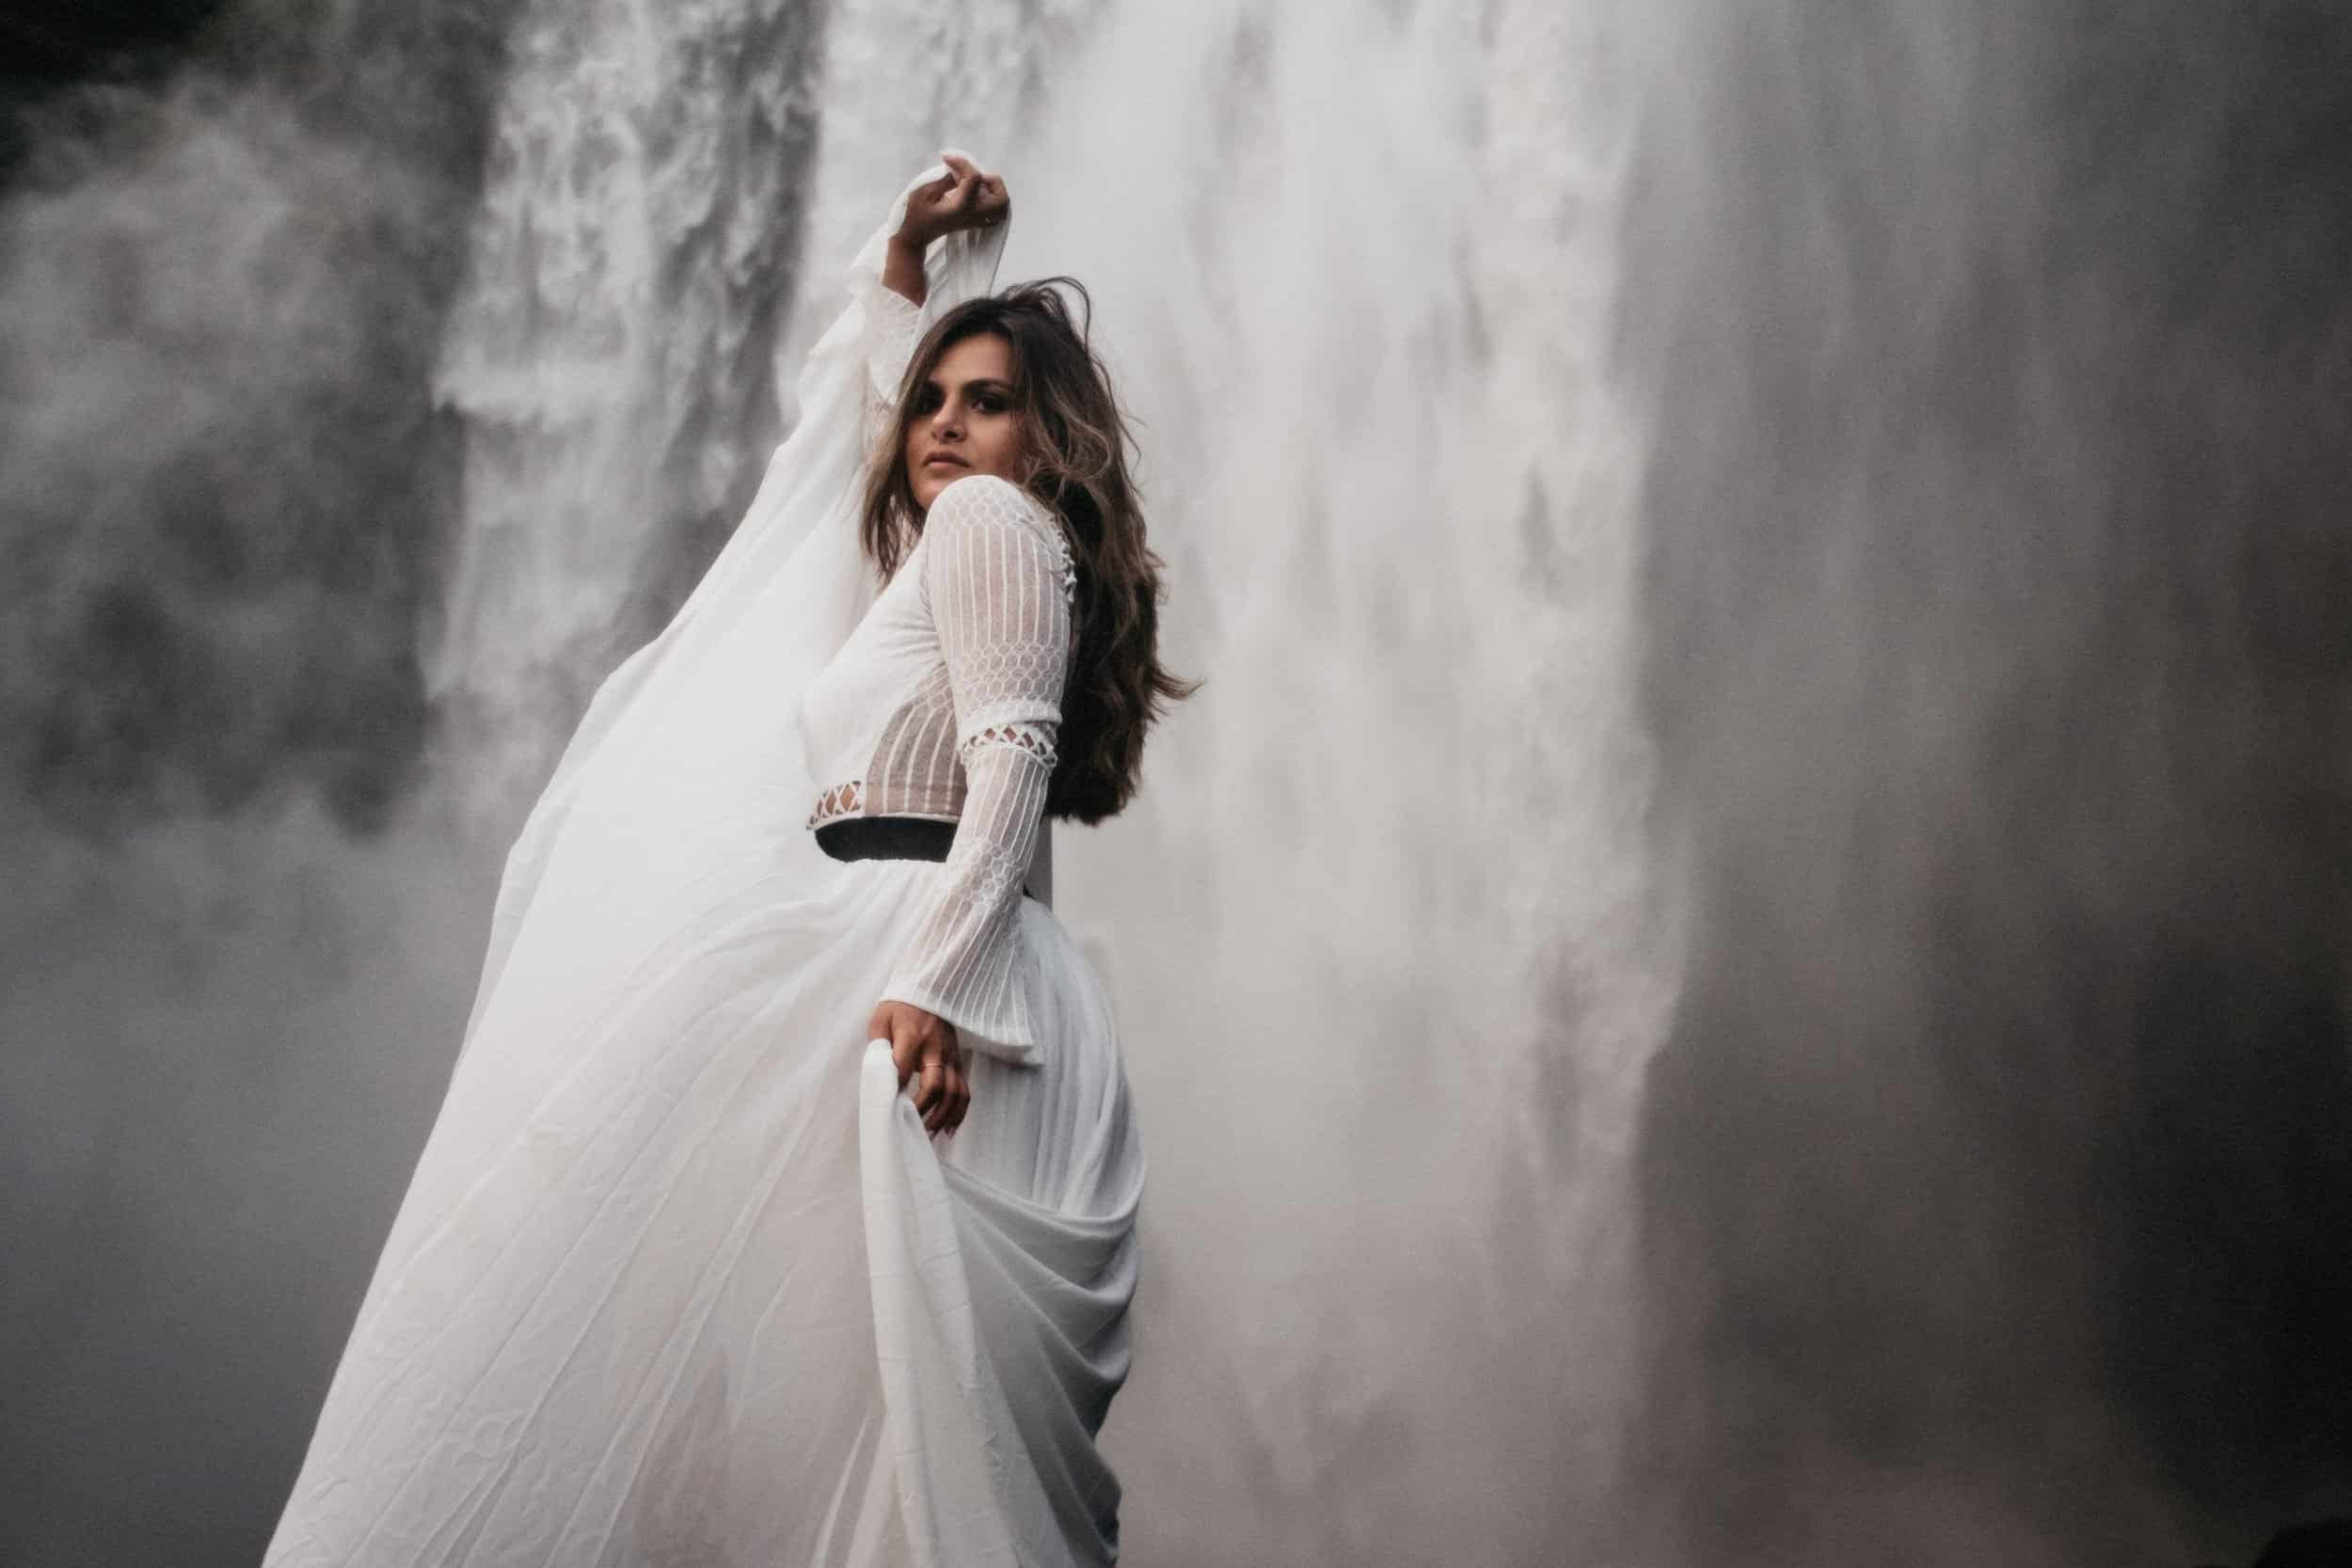 bridal session at Skofagoss waterfall in Iceland